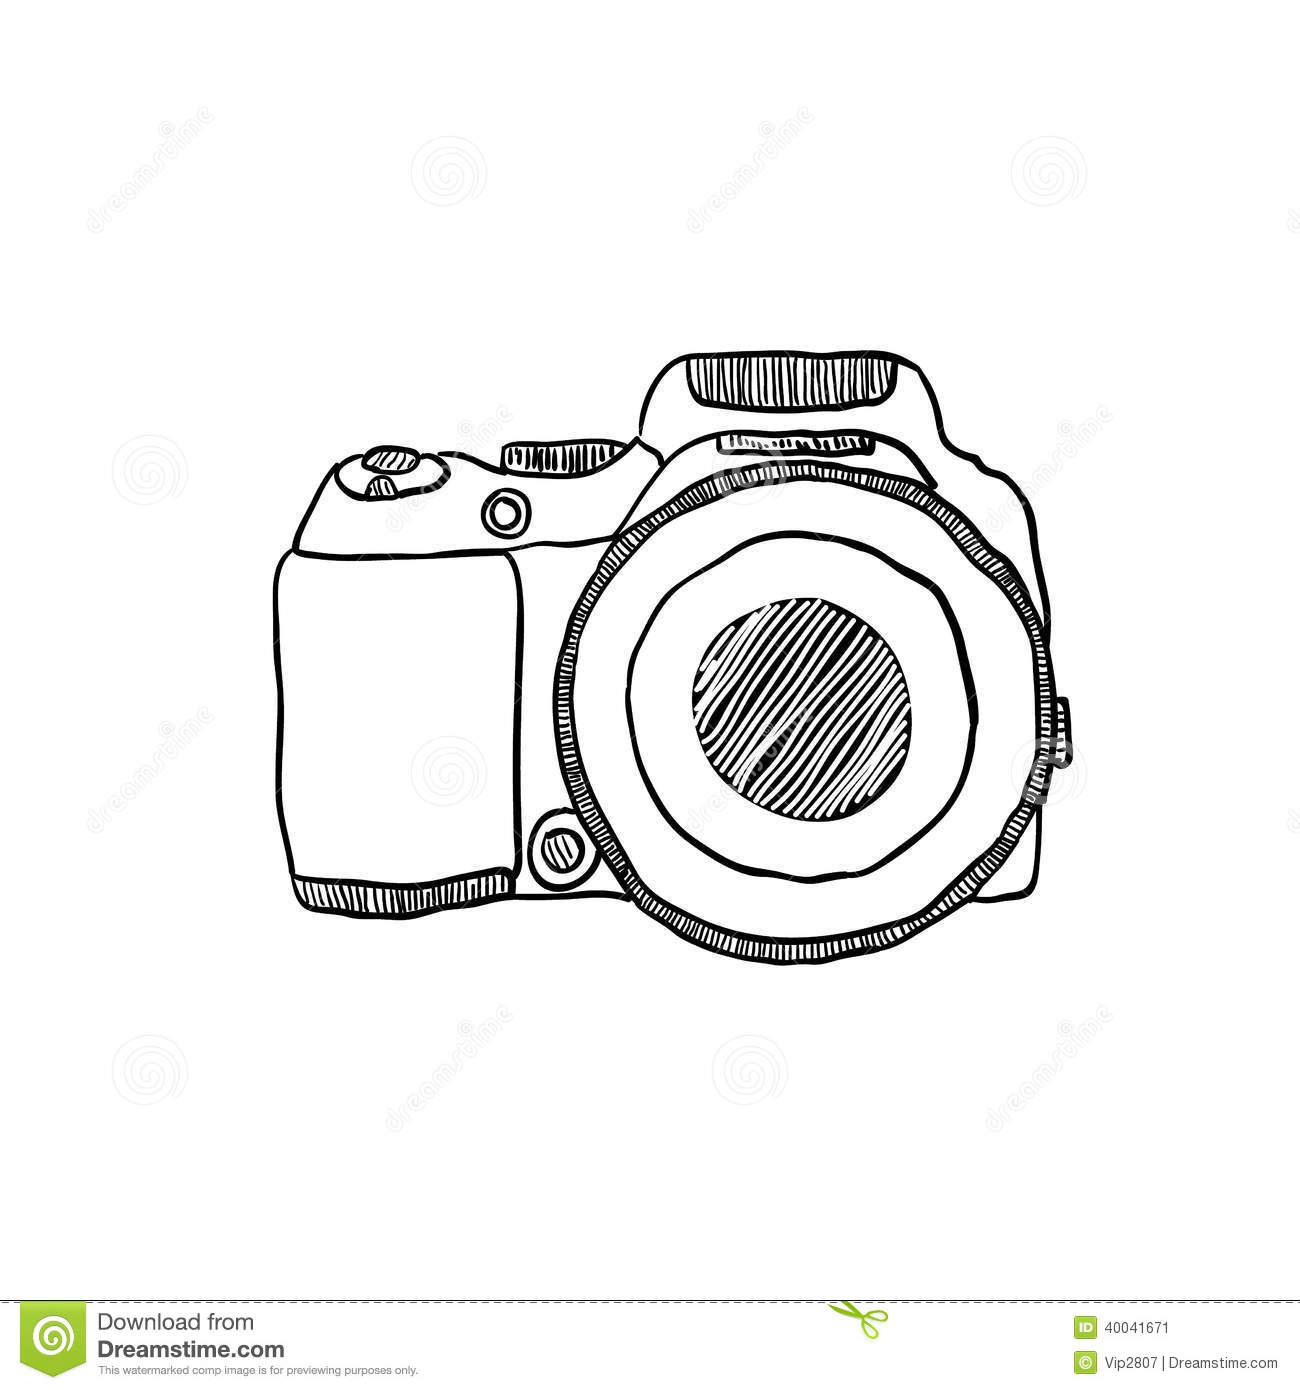 The Sketch Of A Photo Camera Drawn By Hand Stock Vector - Illustration Of Draw Film 40041671